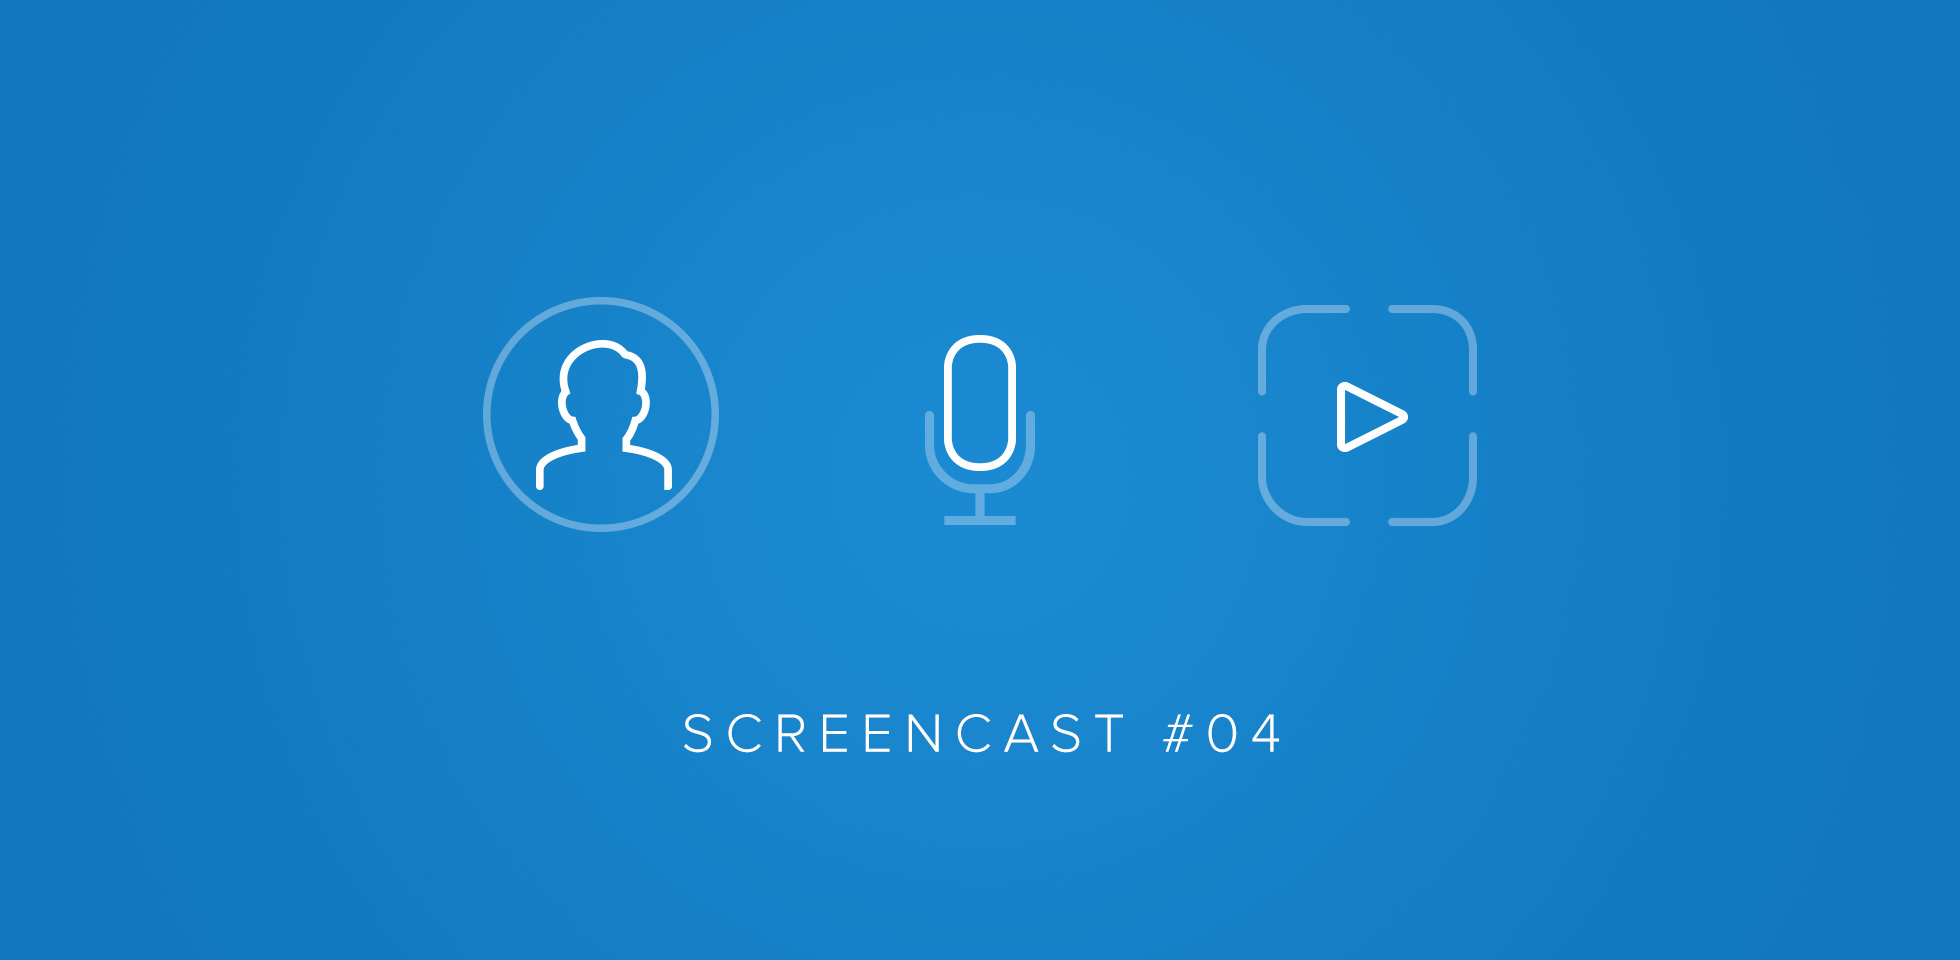 Screencast #04 - View rendering and module config